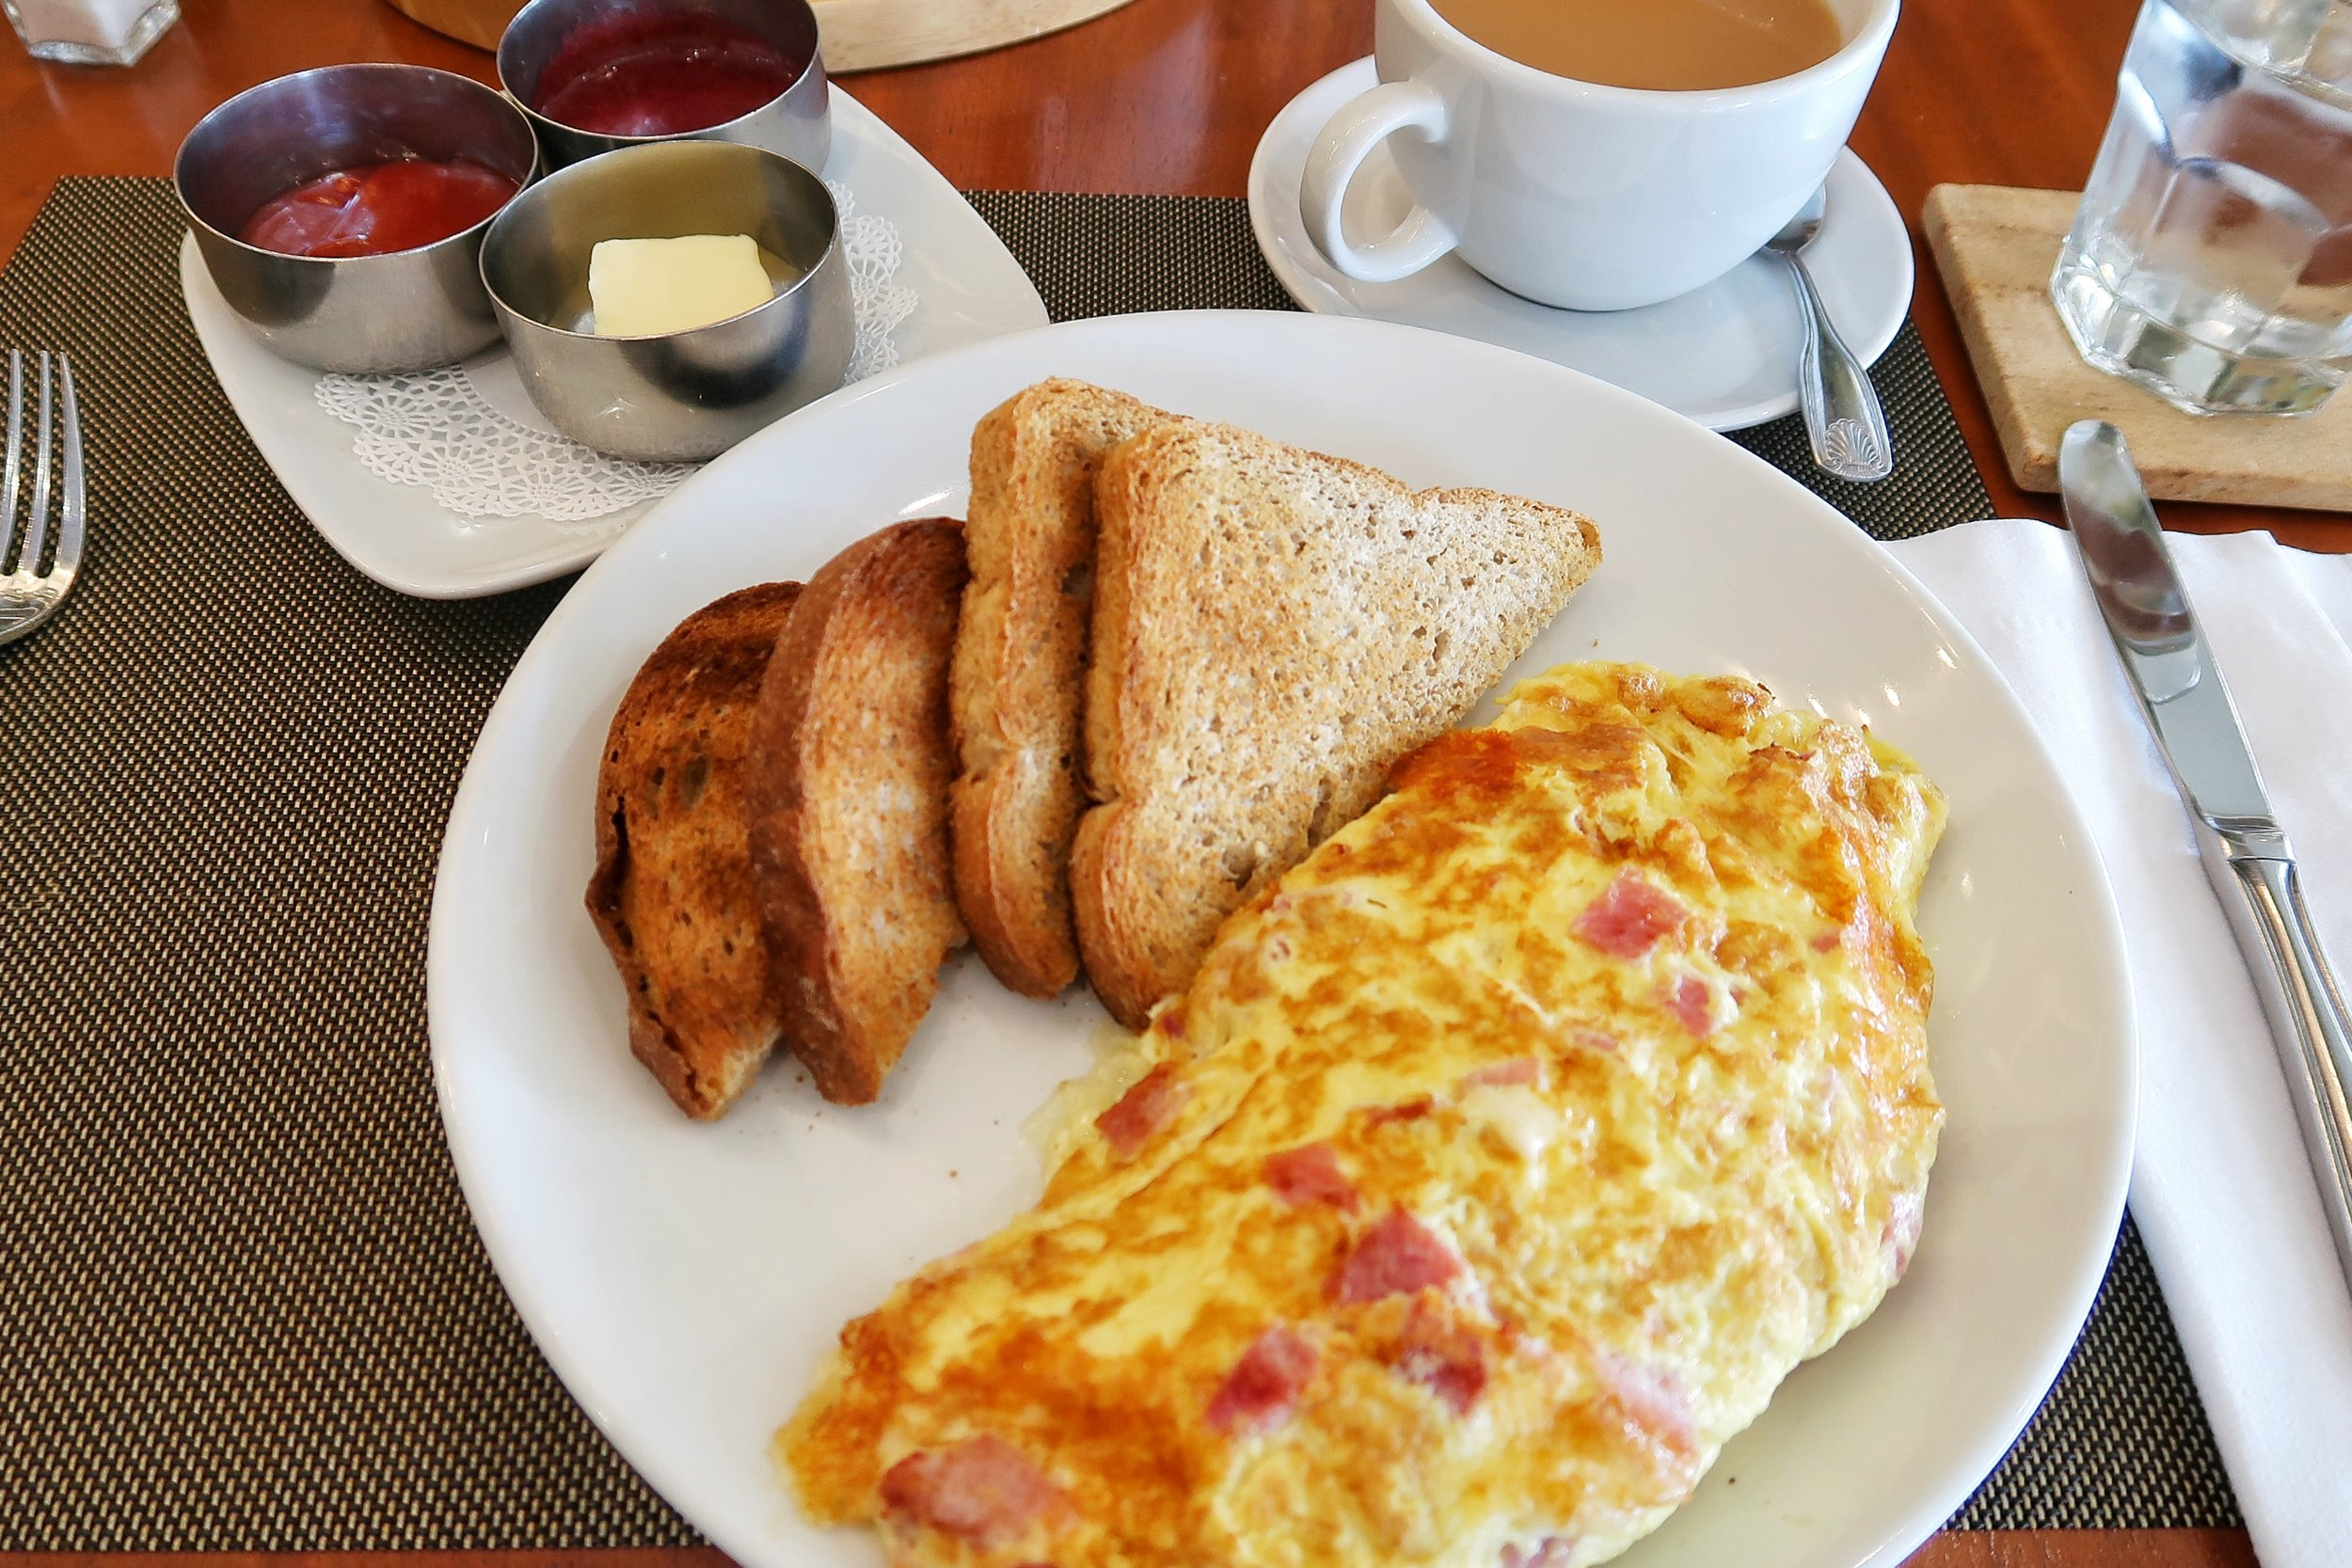 A fluffy and luscious Ham & Cheese Omelette with toast